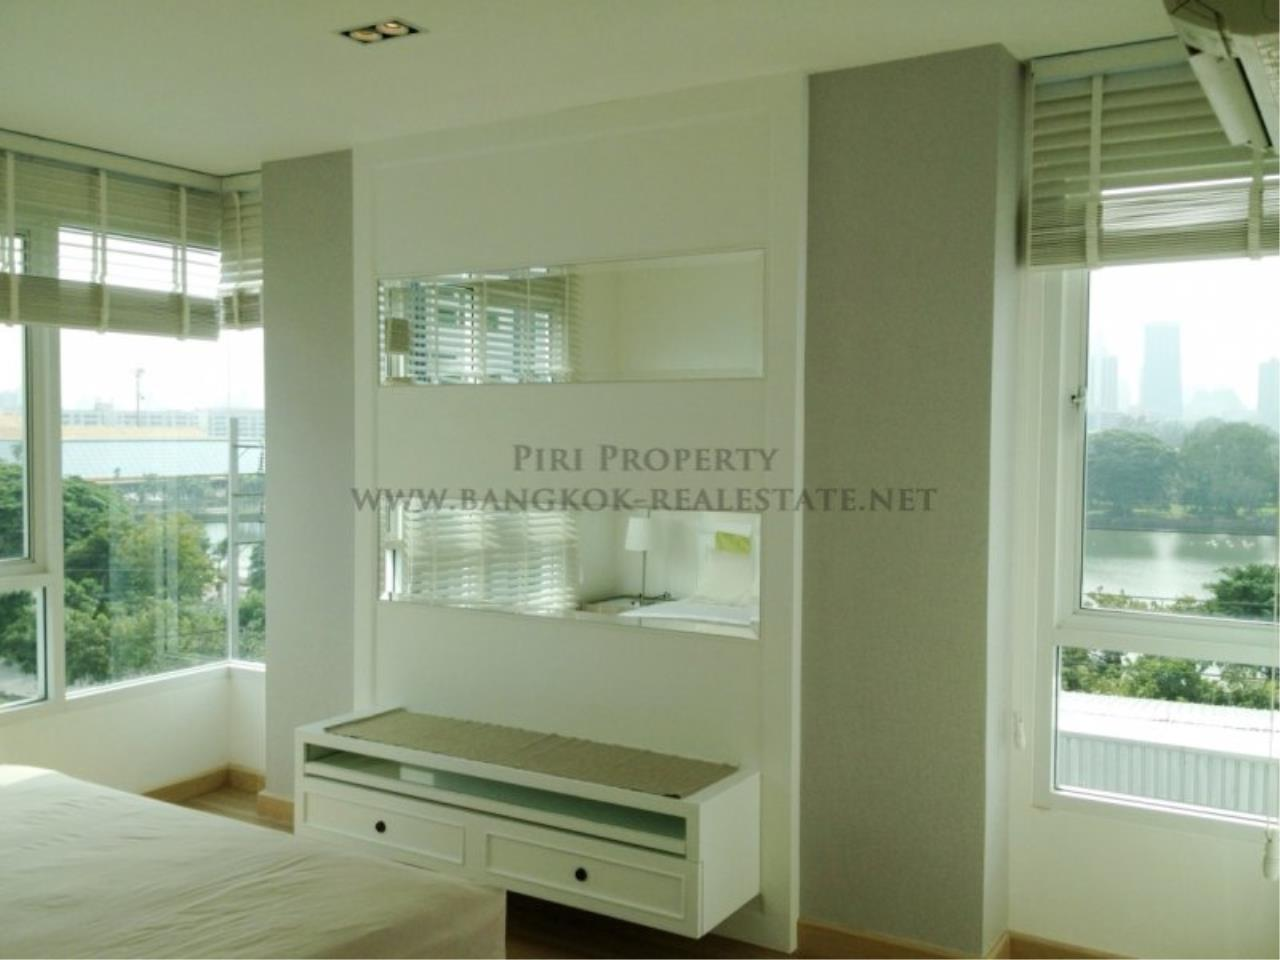 Piri Property Agency's Nice 2 Bedroom Condo in Asoke - 70 SQM - Fully furnished 1